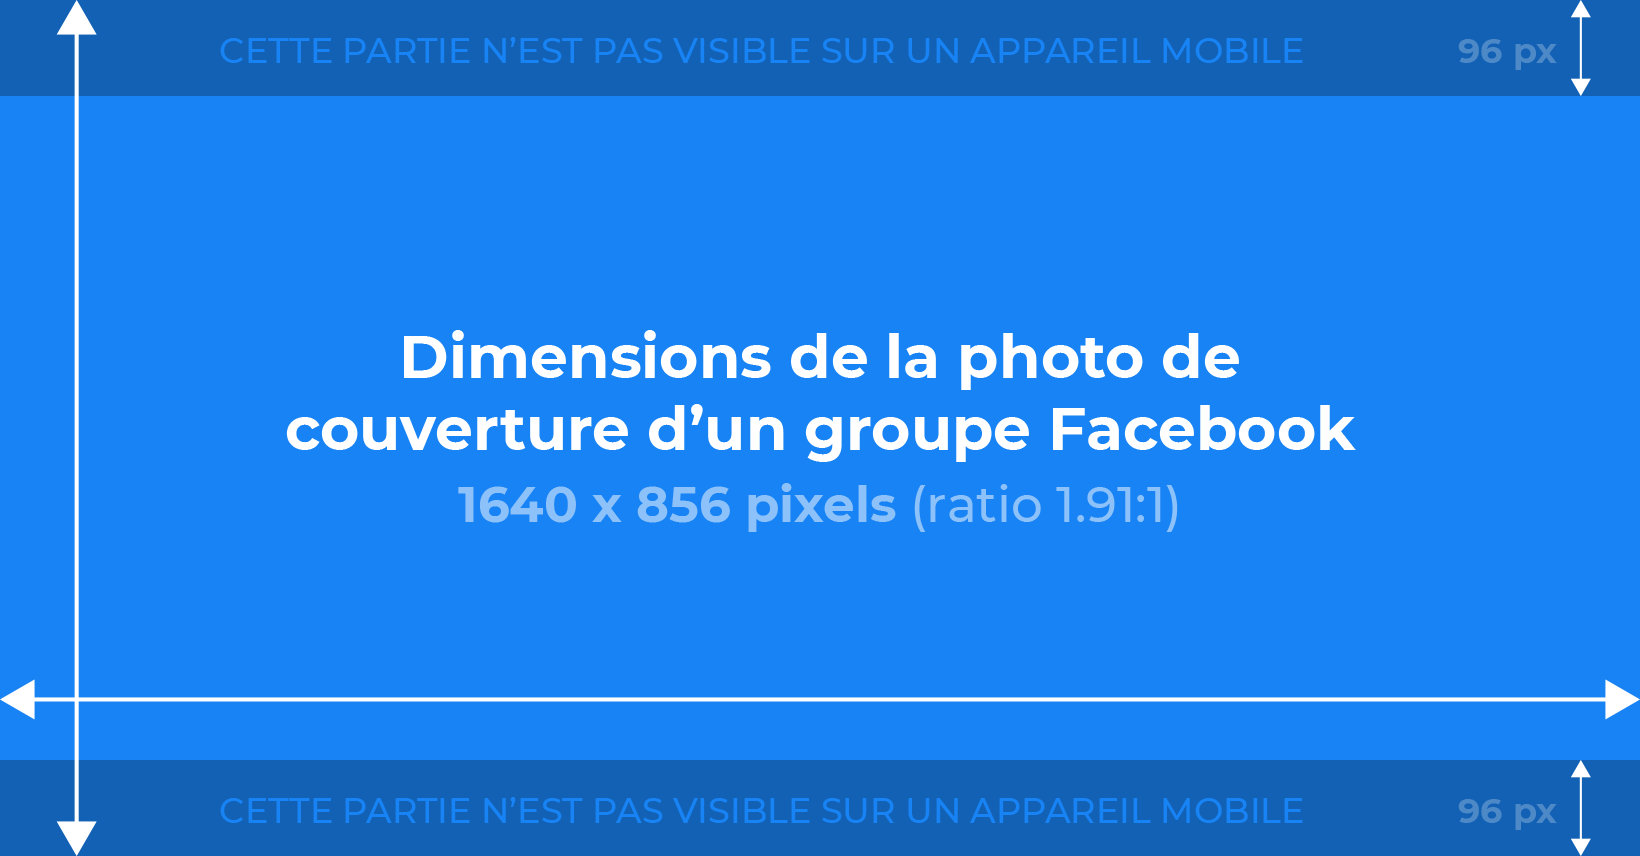 Dimensions photo de couverture d'un groupe Facebook